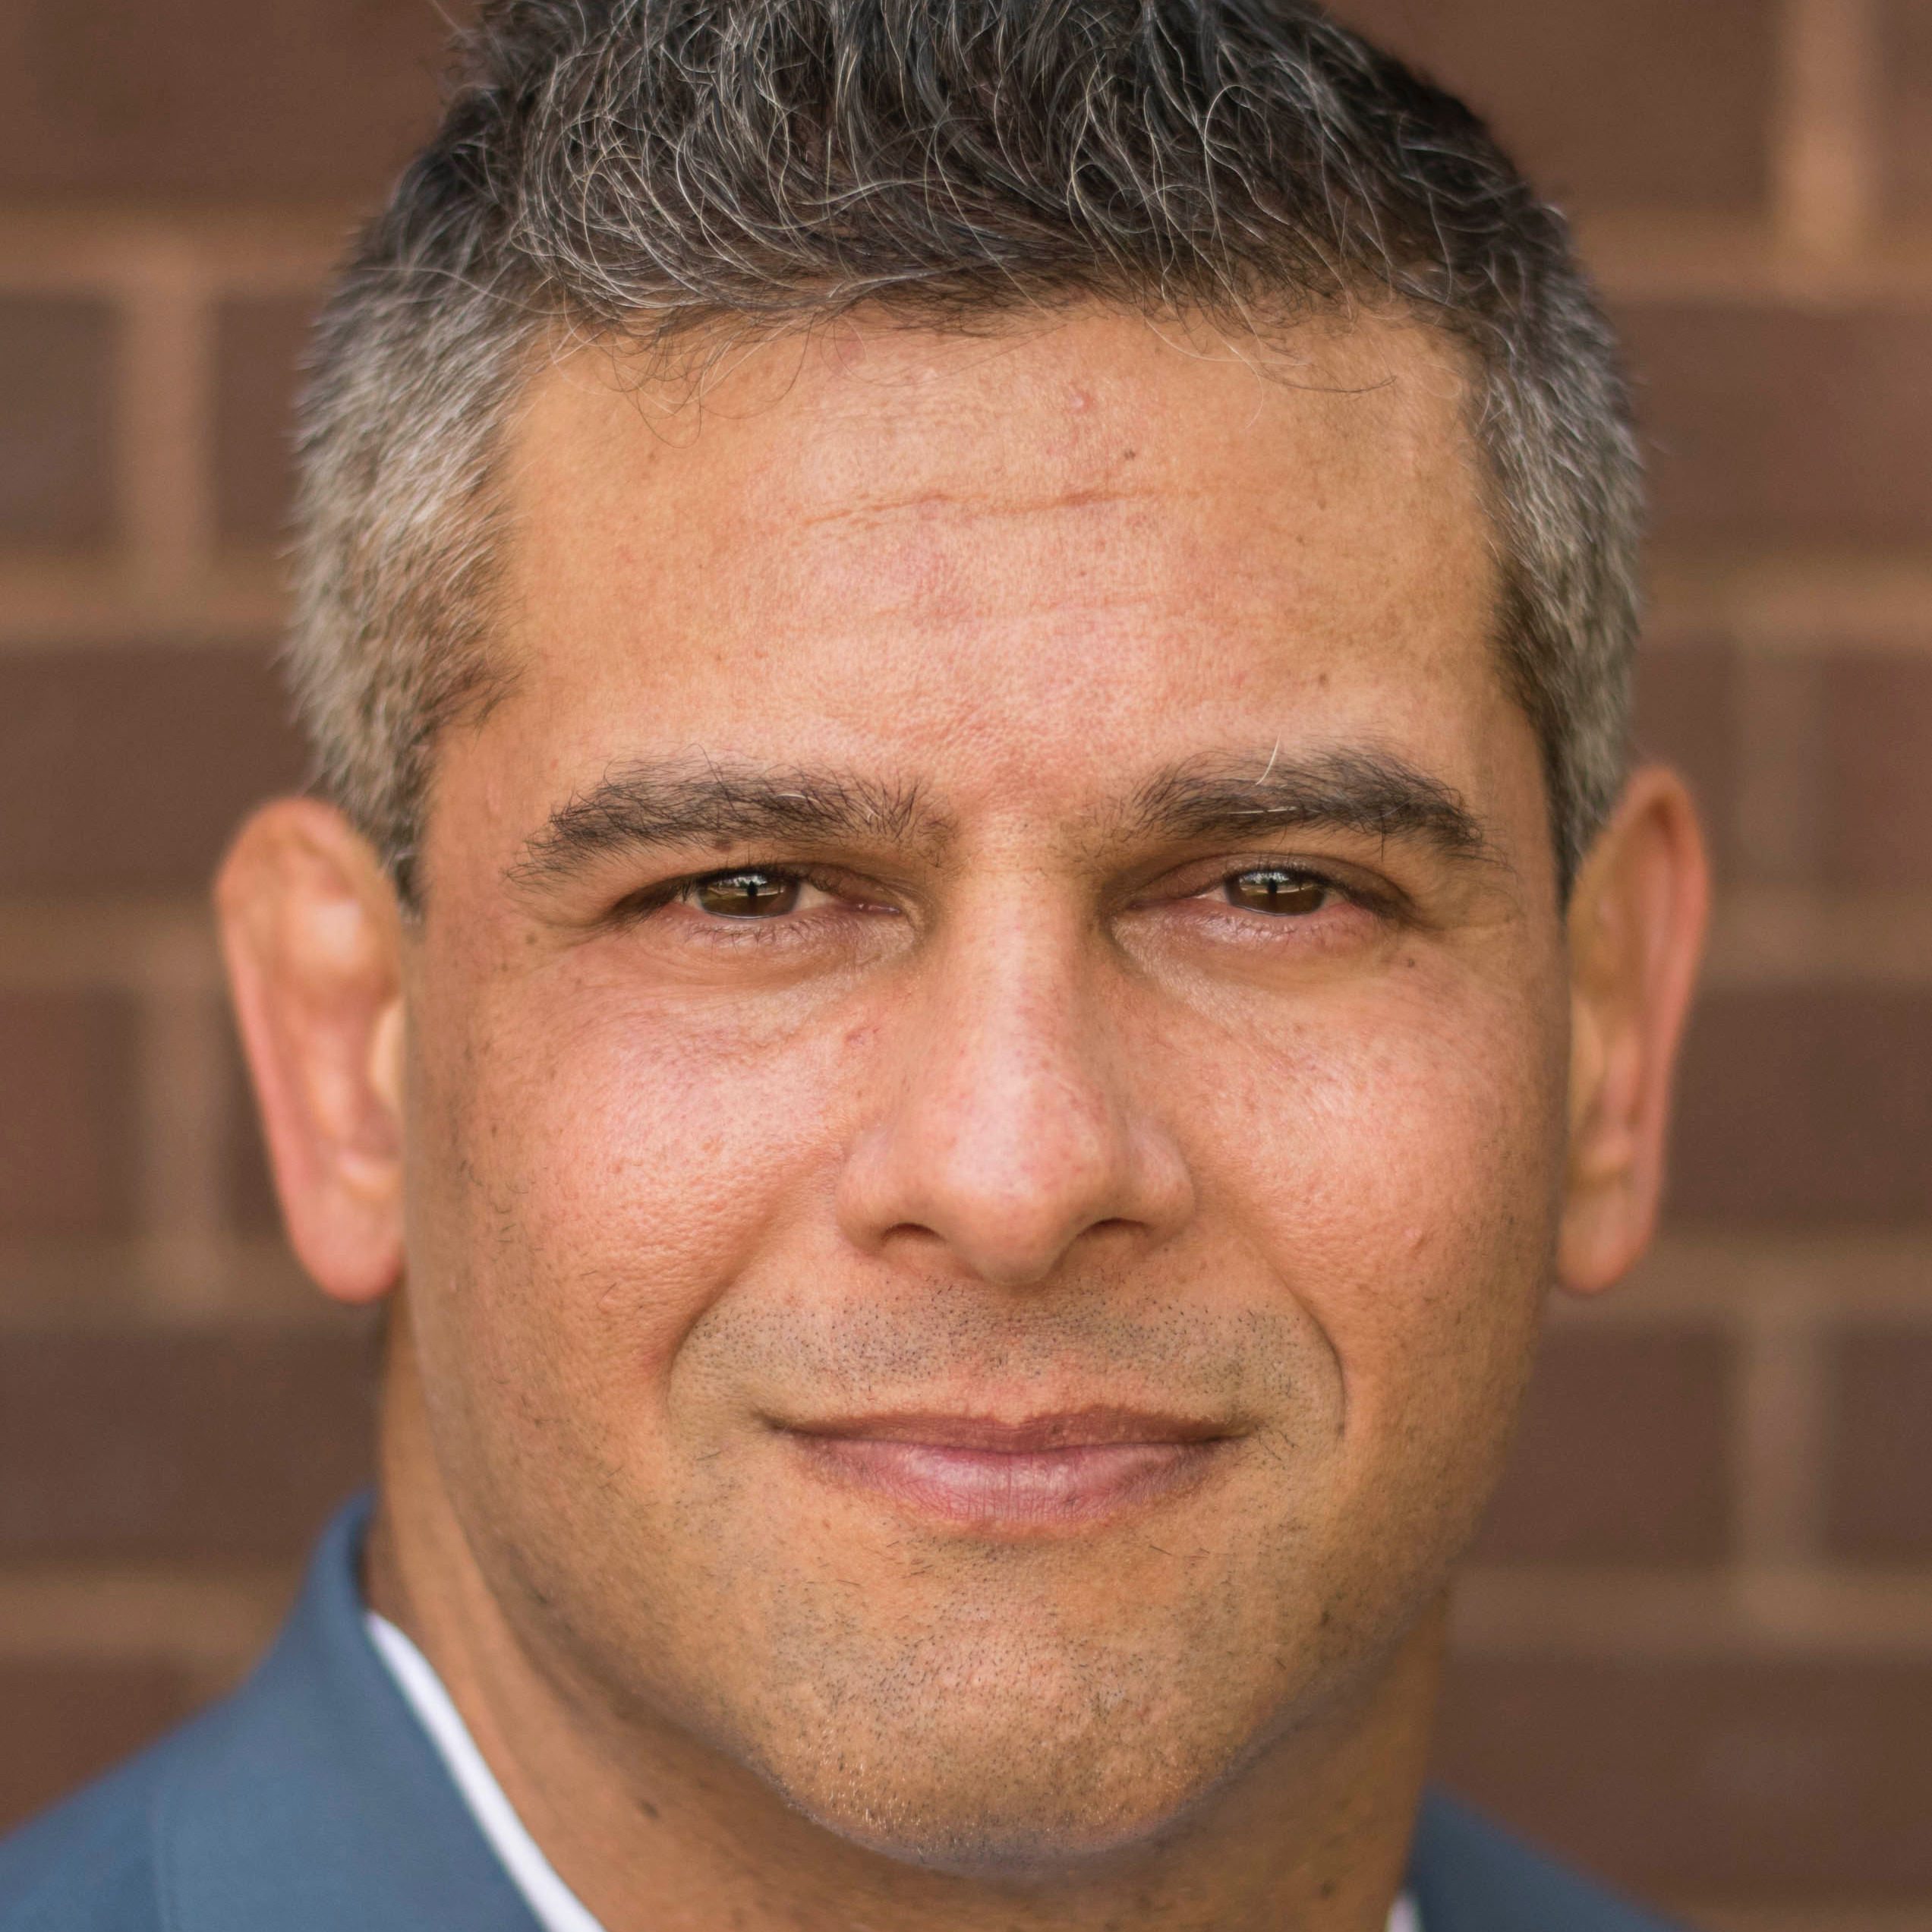 Keith Weiss CFP MBA Chief Investment Officer in Putnam County, New York